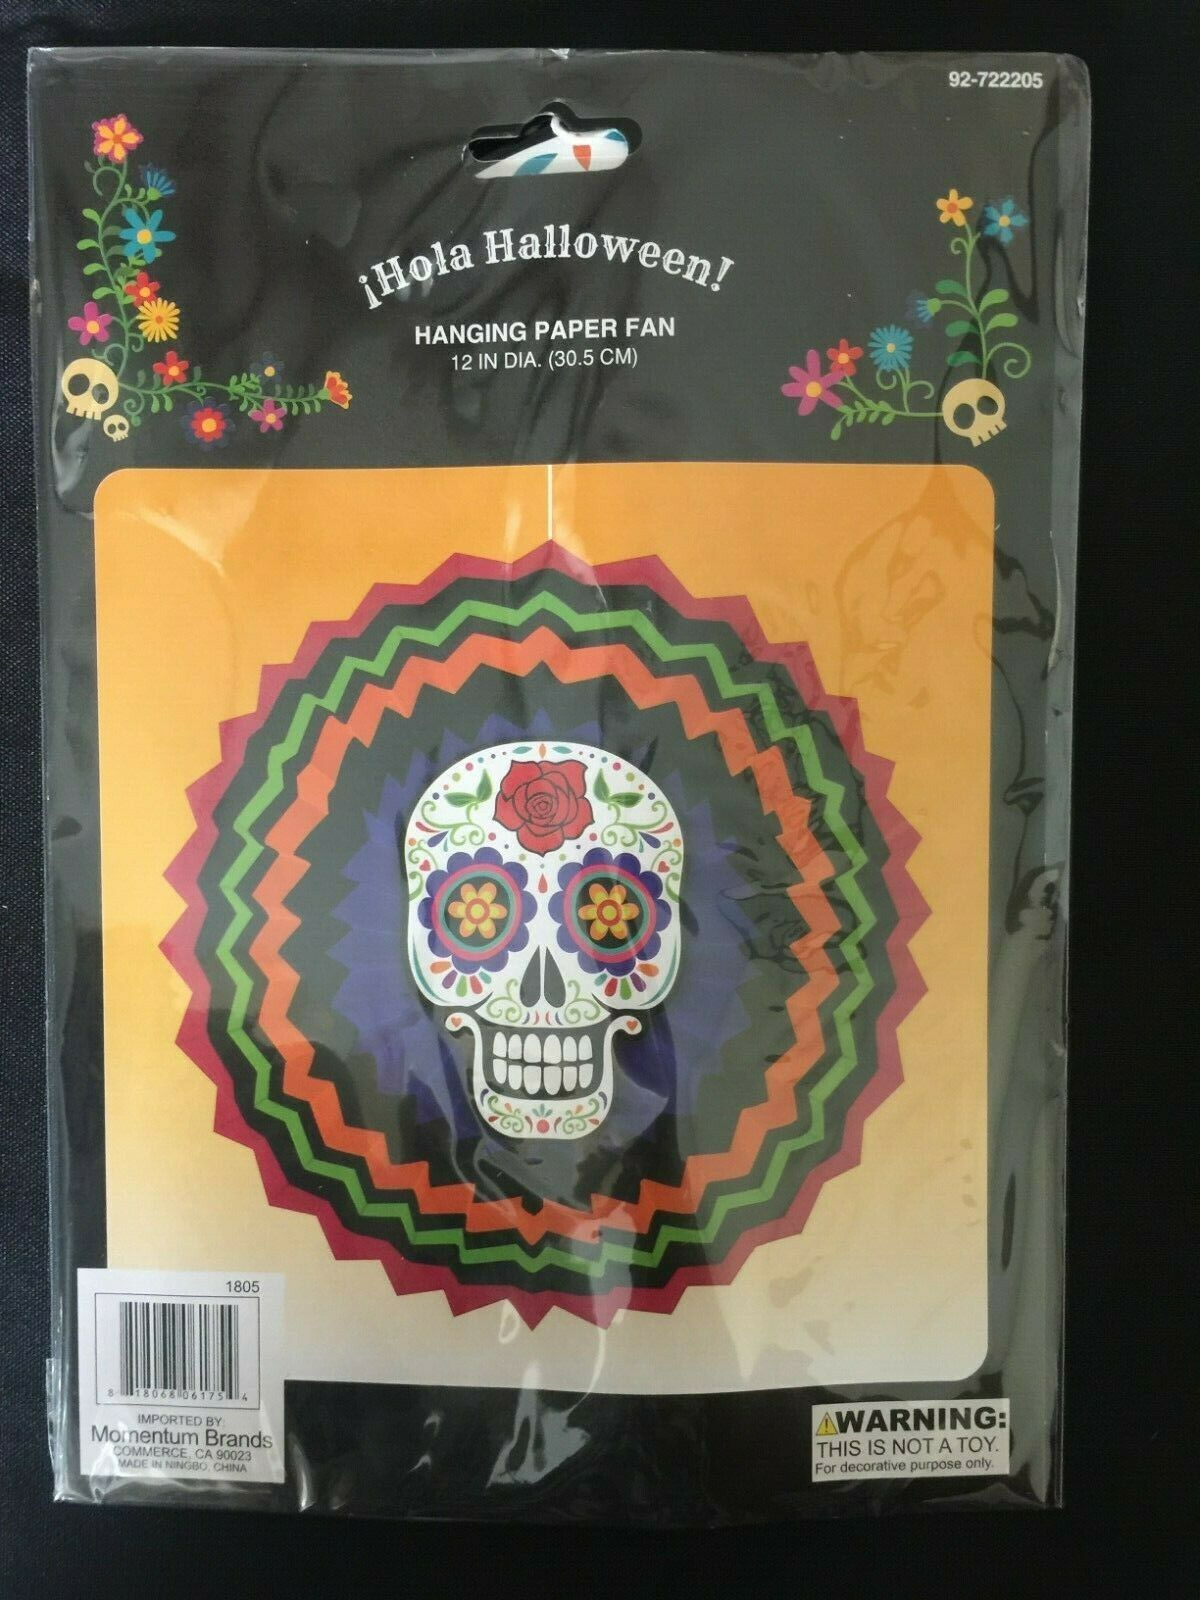 Sugar Skull 15x10 FT Vinyl Backdrop PhotographersDay of The Dead Colorful Skull with Floral Ornament Hand Drawn Style Doodle Background for Party Home Decor Outdoorsy Theme Shoot Props